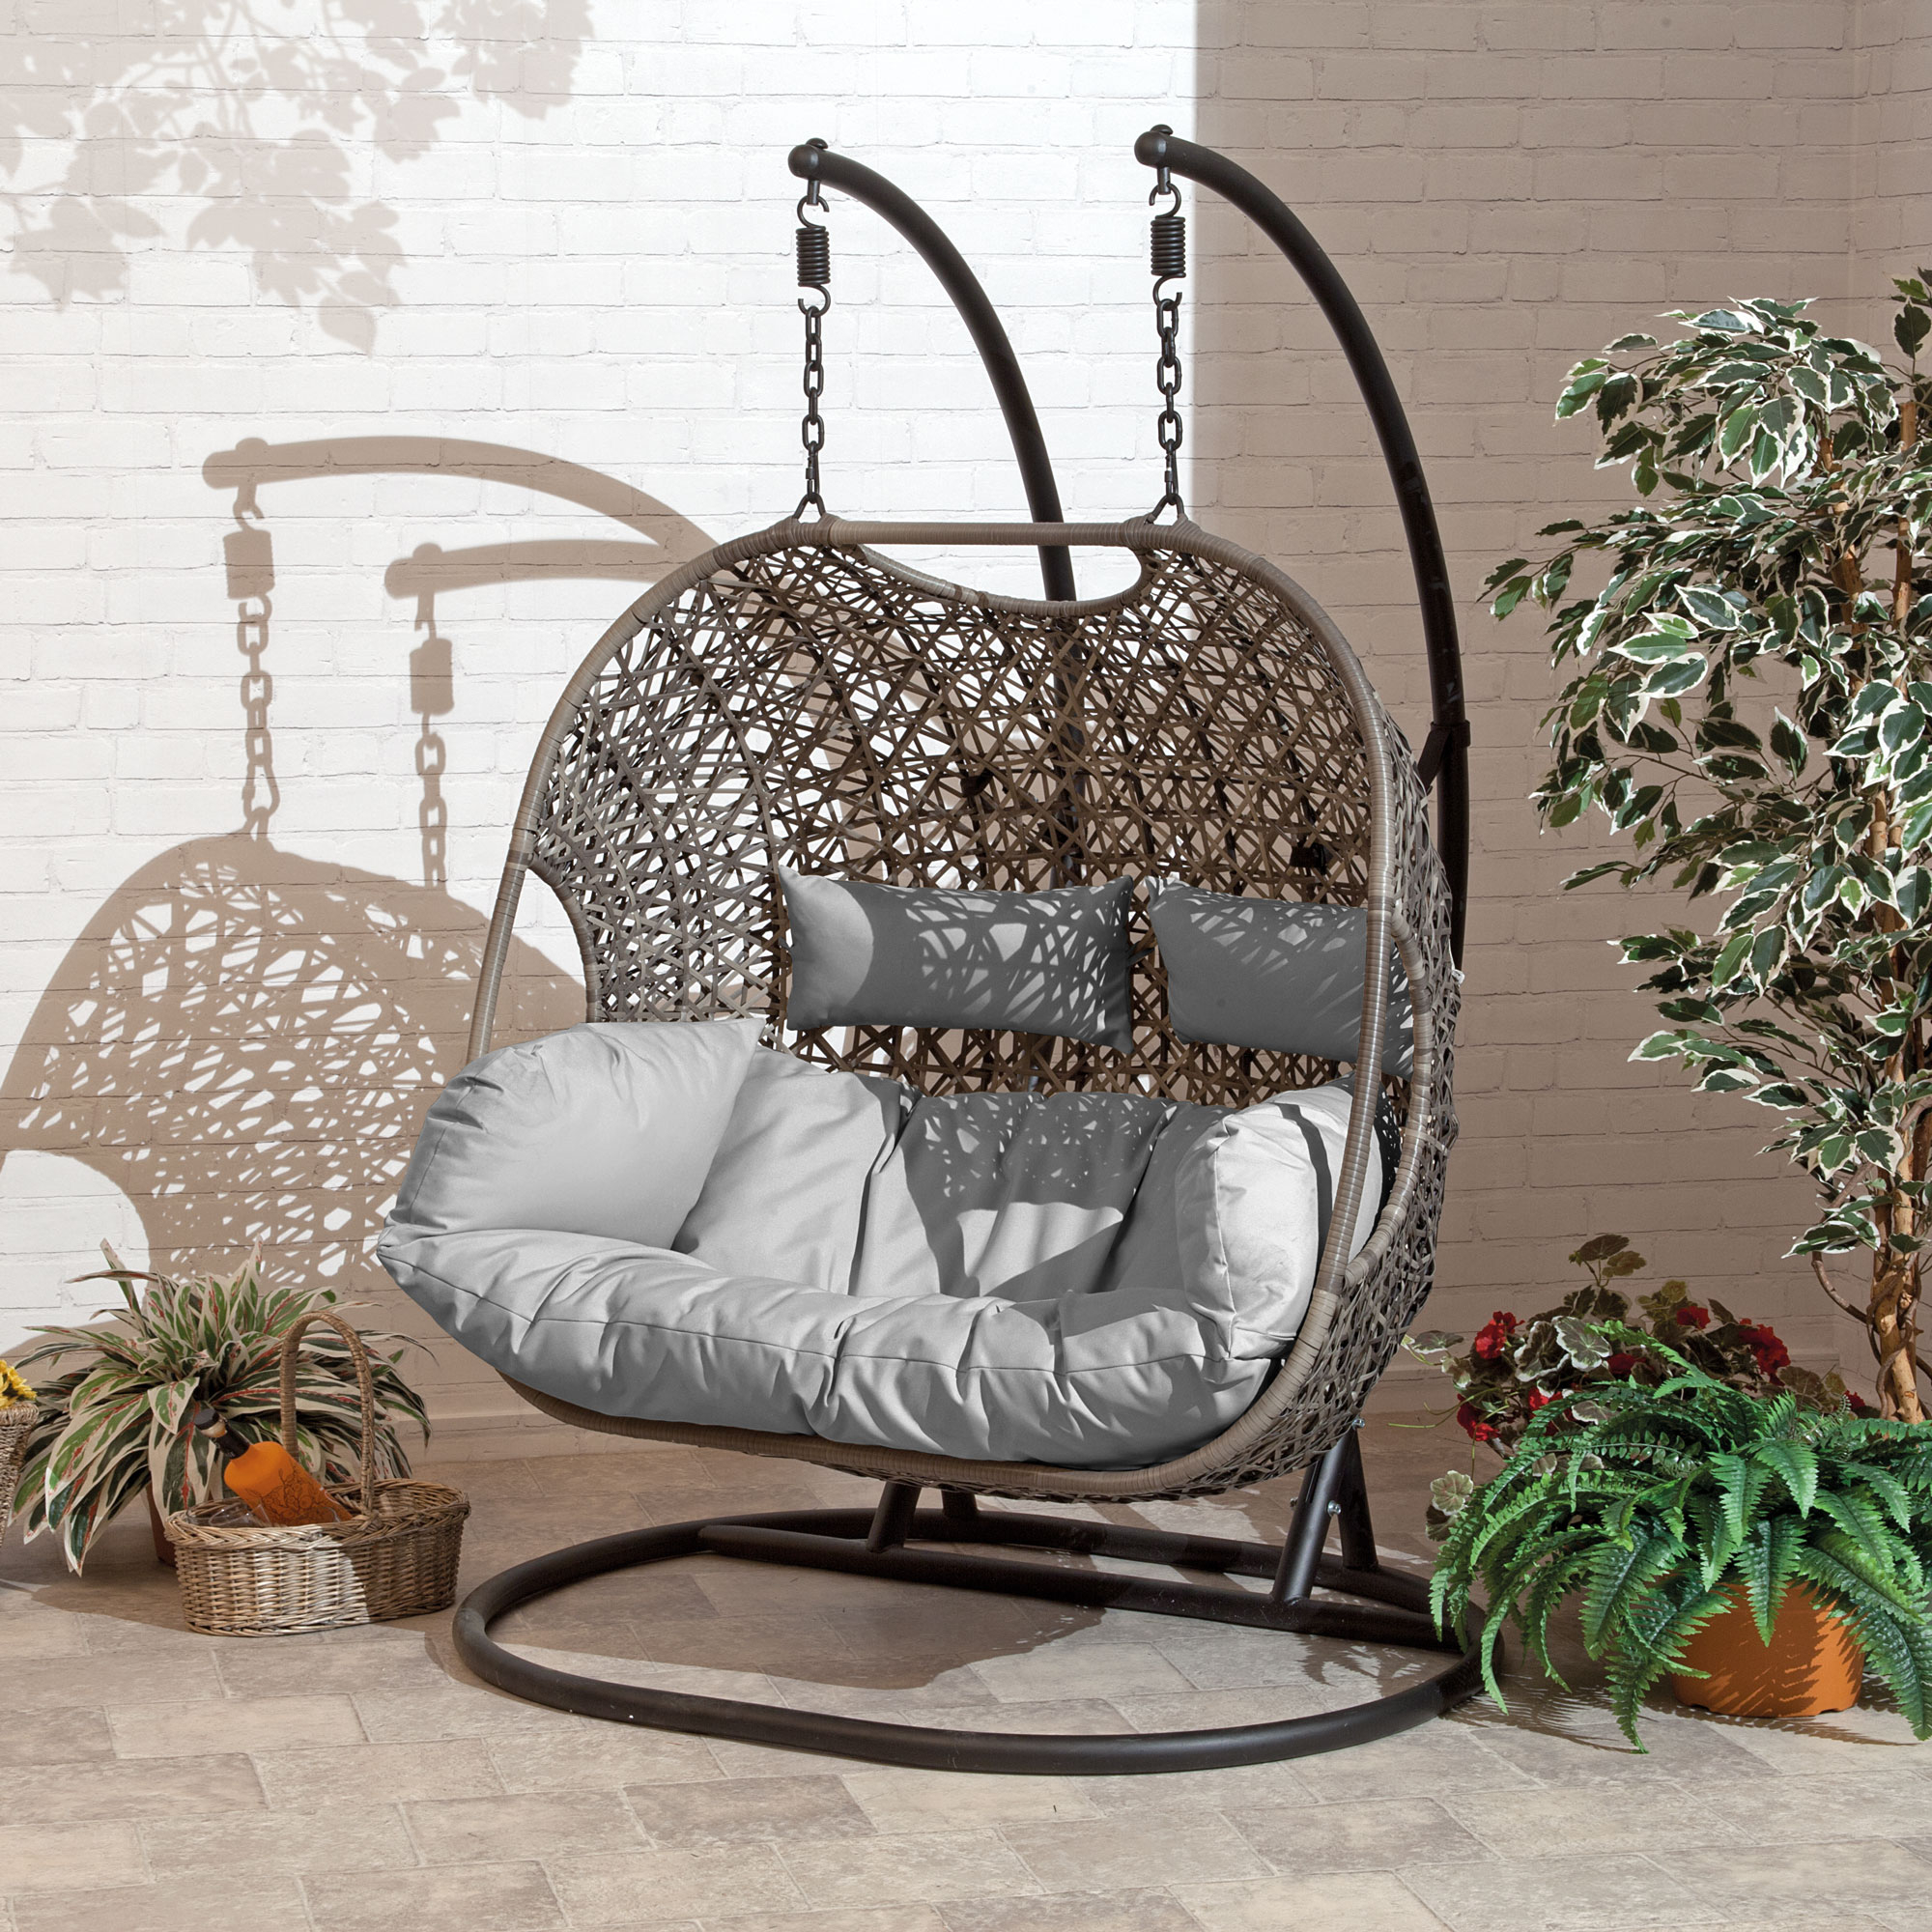 Brampton Luxury Rattan Wicker Outdoor Hanging Cocoon Egg Swing Chair with Grey Cushions (Double)